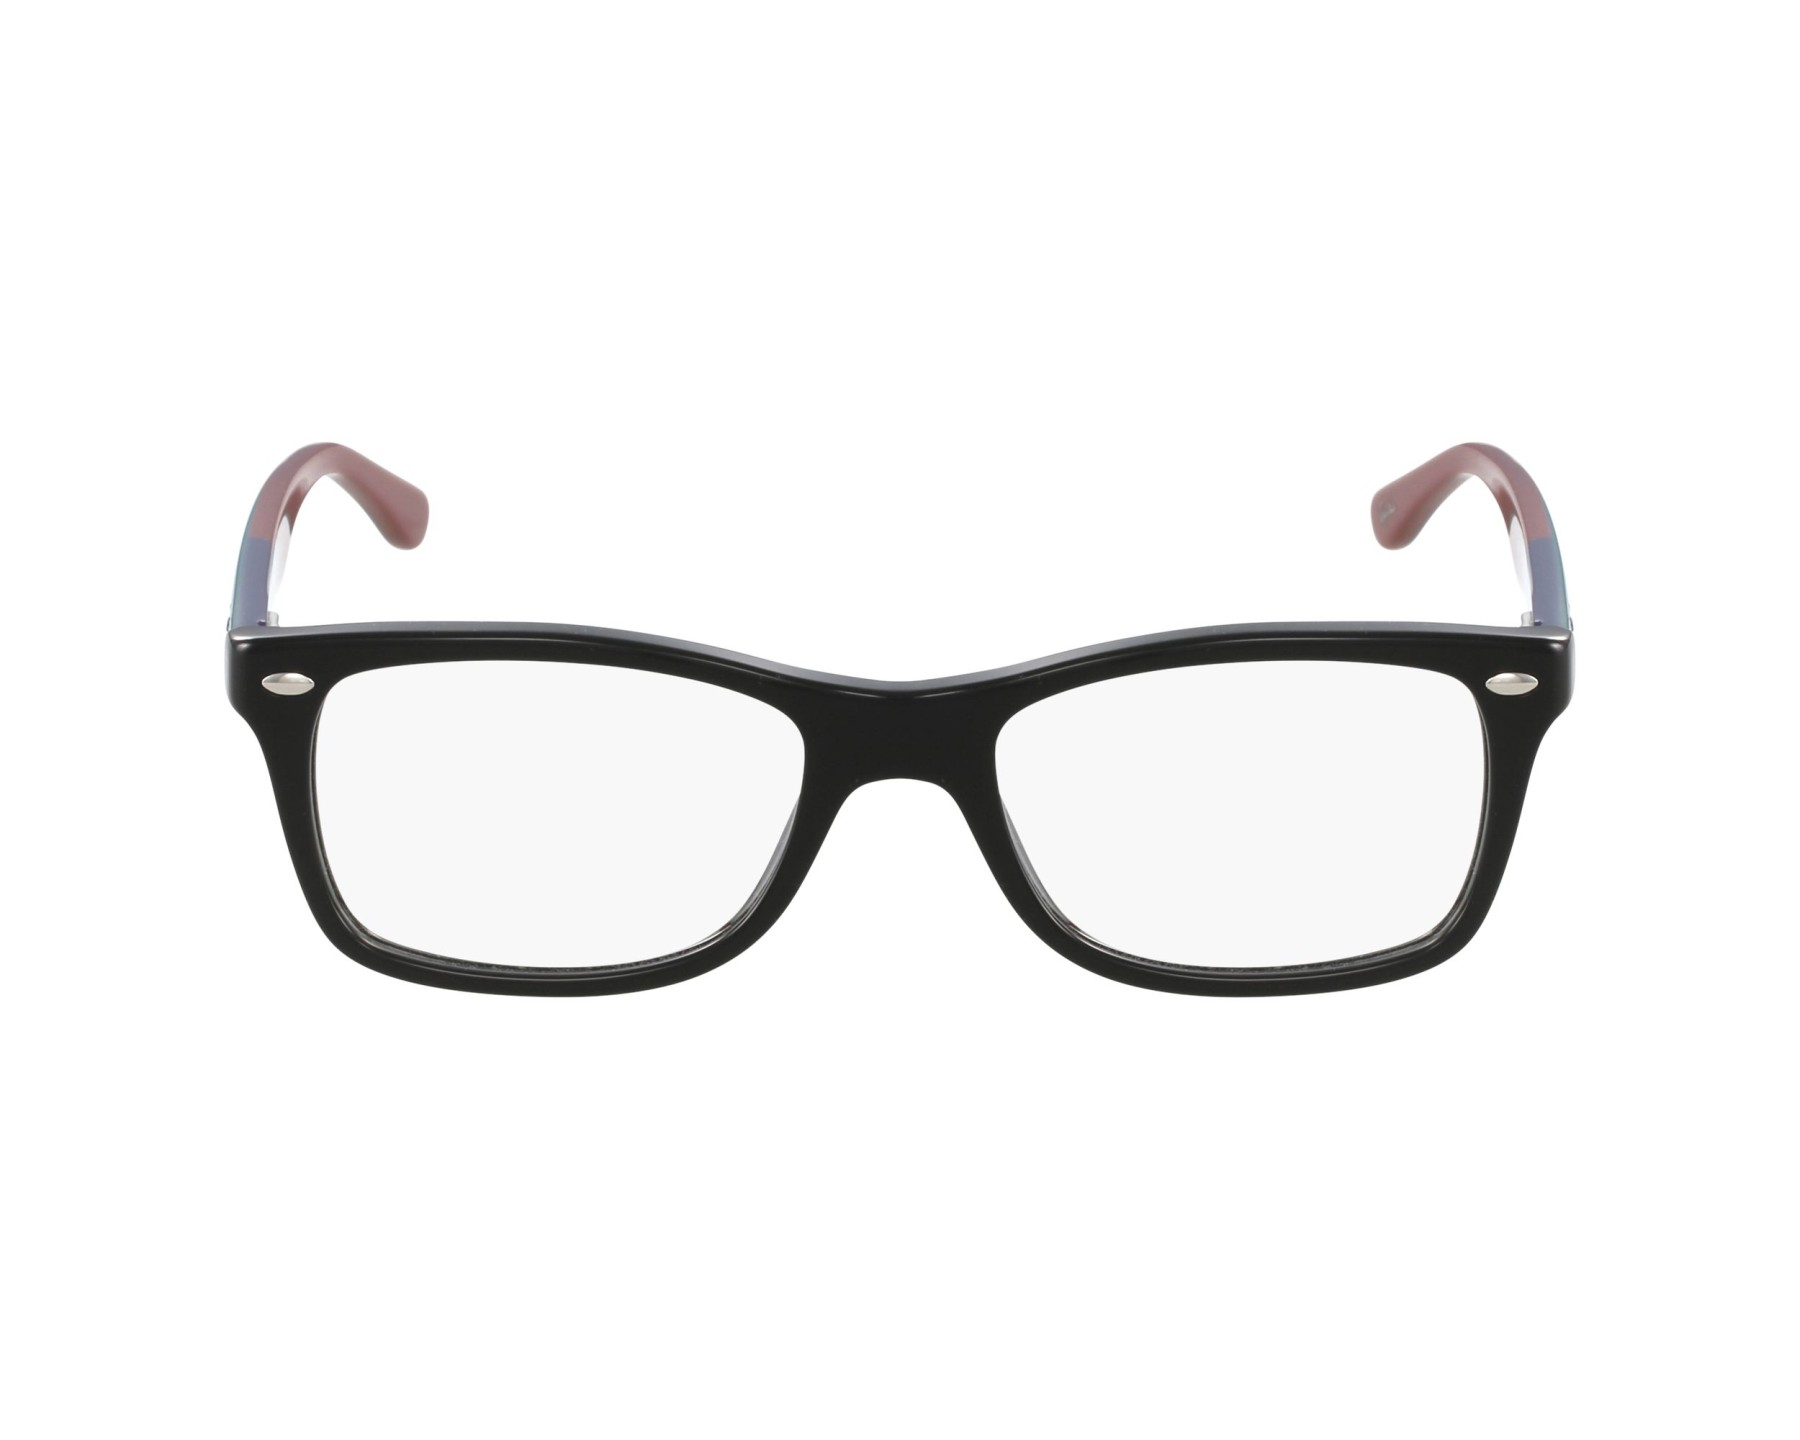 Ray Ban Eyeglasses Rx Buy Now And Save 45